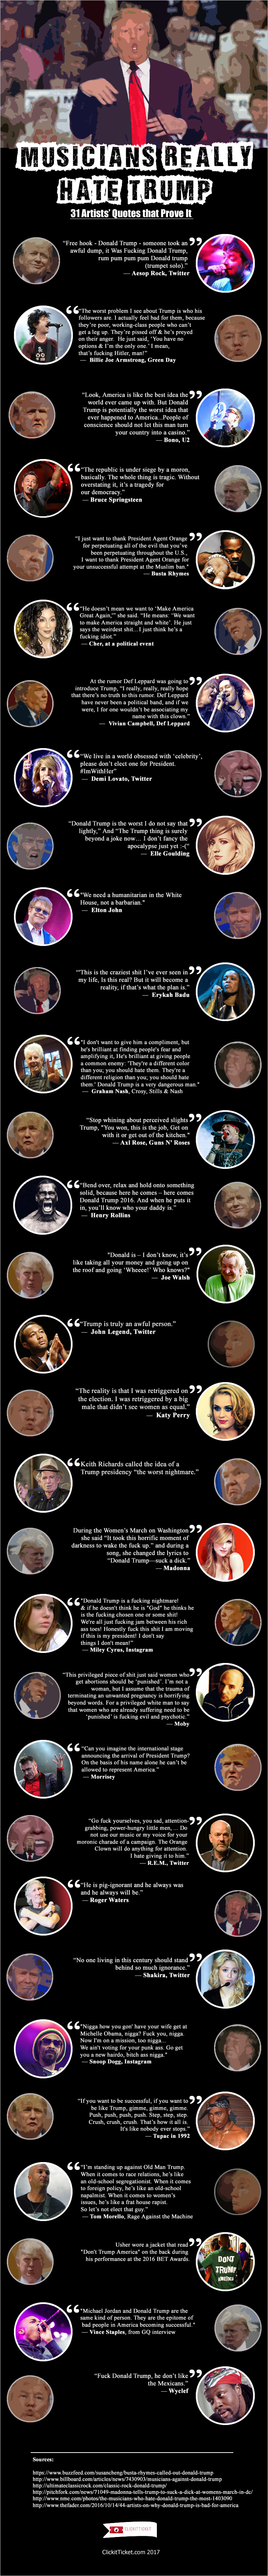 Musicians Really Hate Trump Infographic